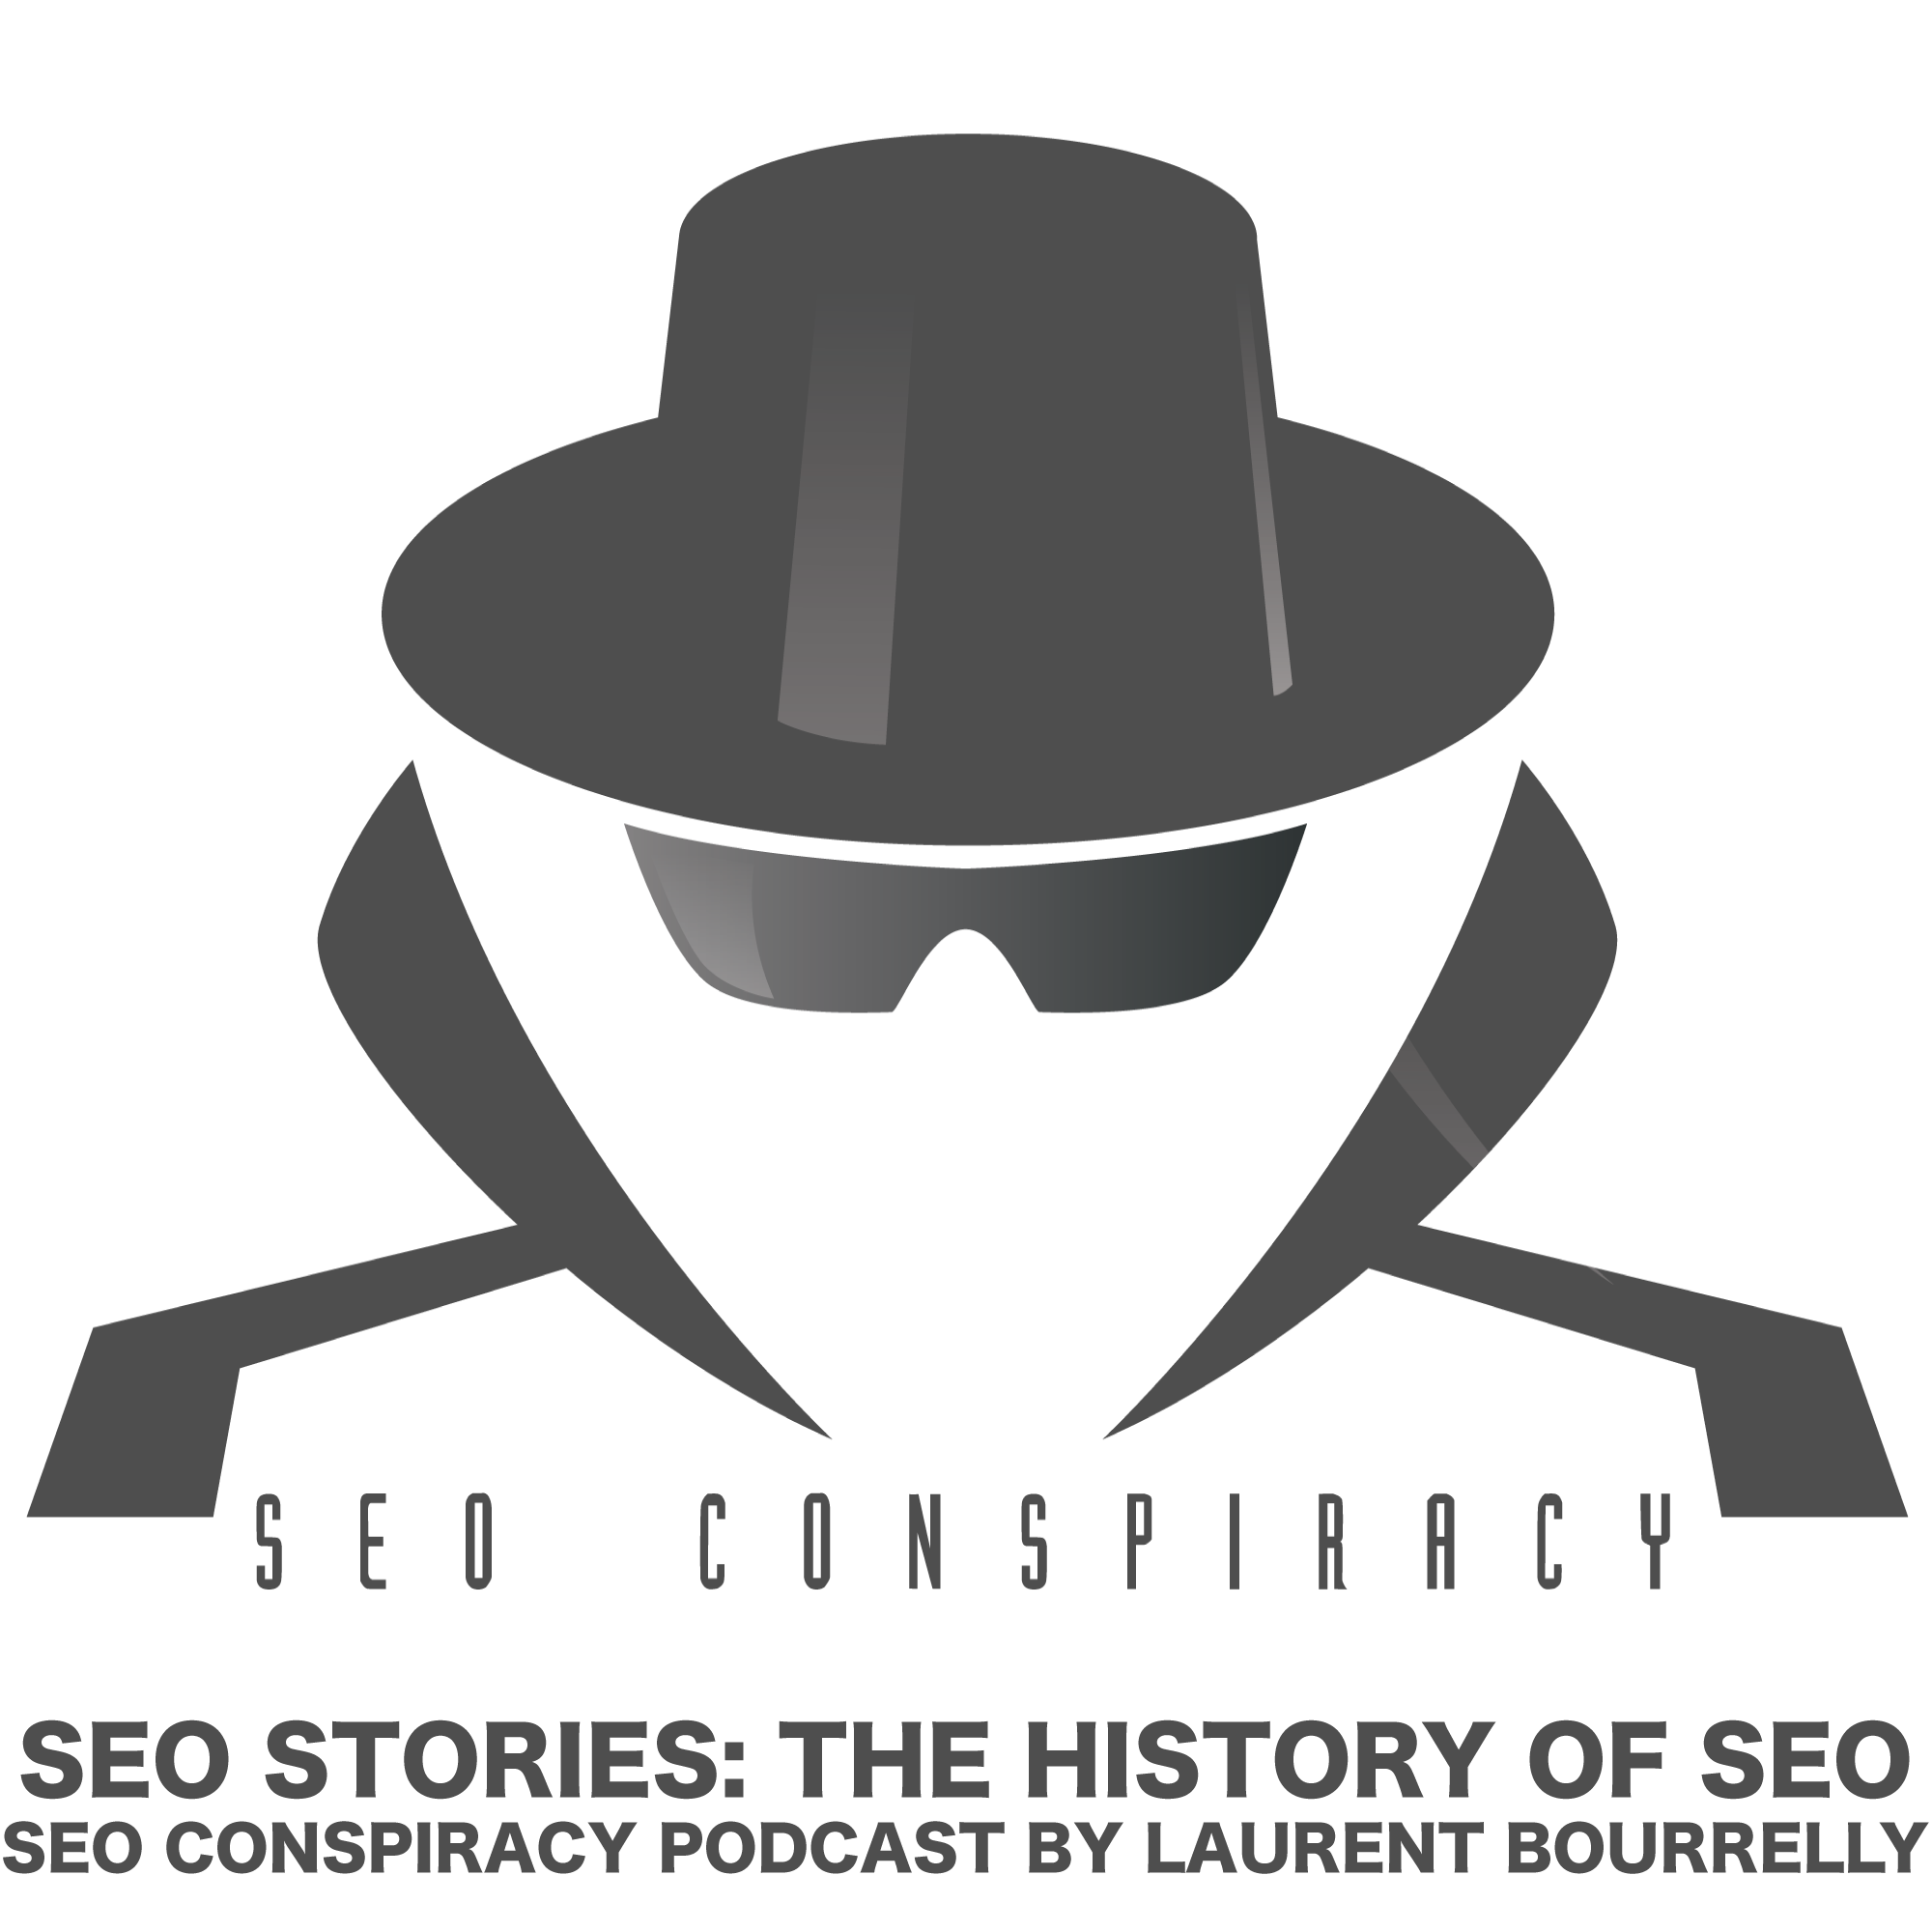 The Super Powers of SEO with Judith Lewis : how Search Engine Optimization rules the world